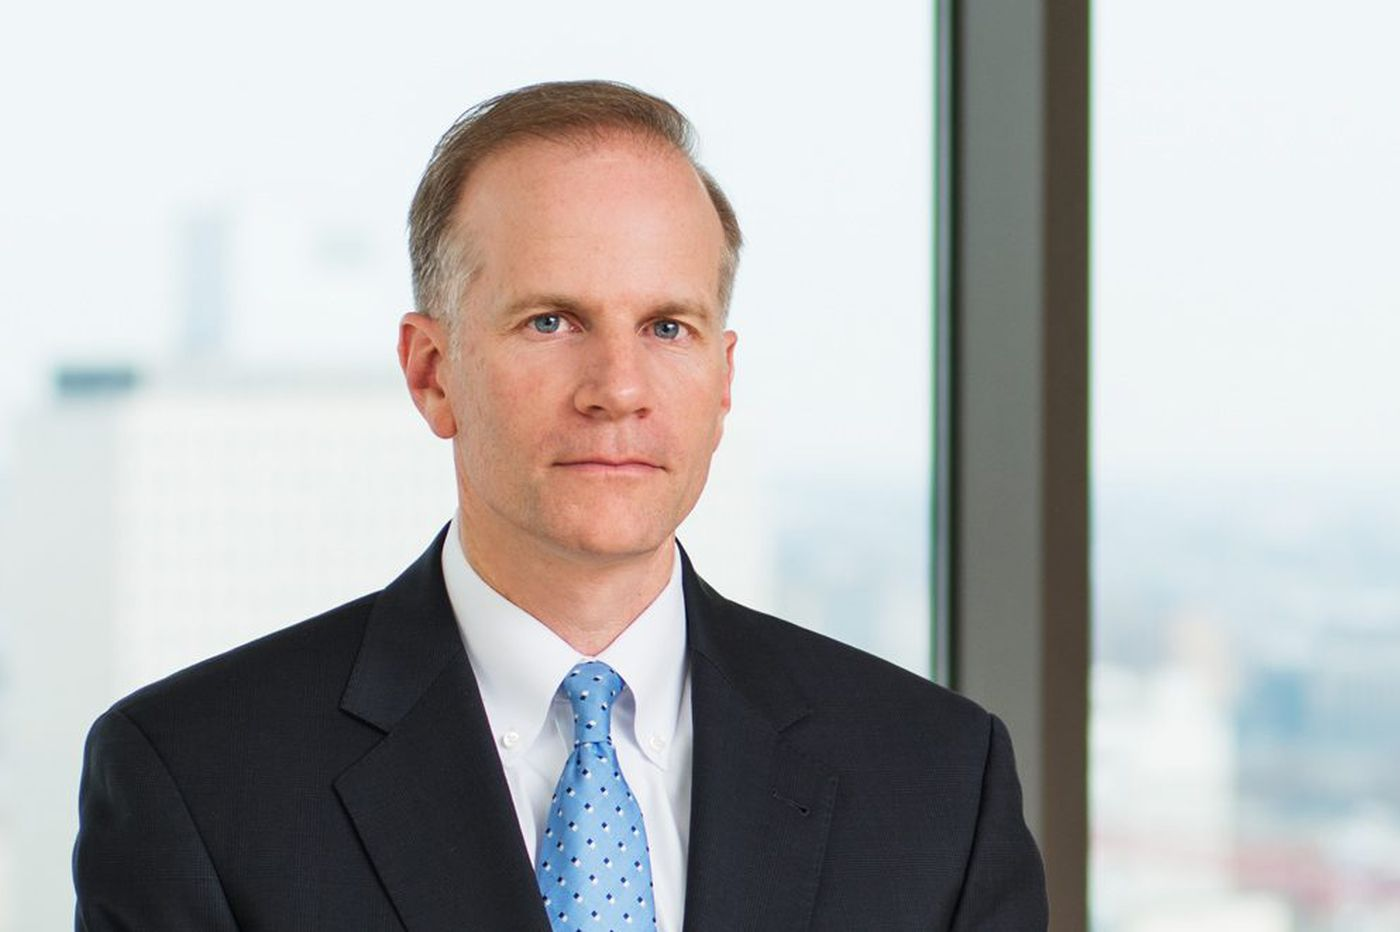 Trump picks Center City lawyer William McSwain for U.S. attorney slot in Philly